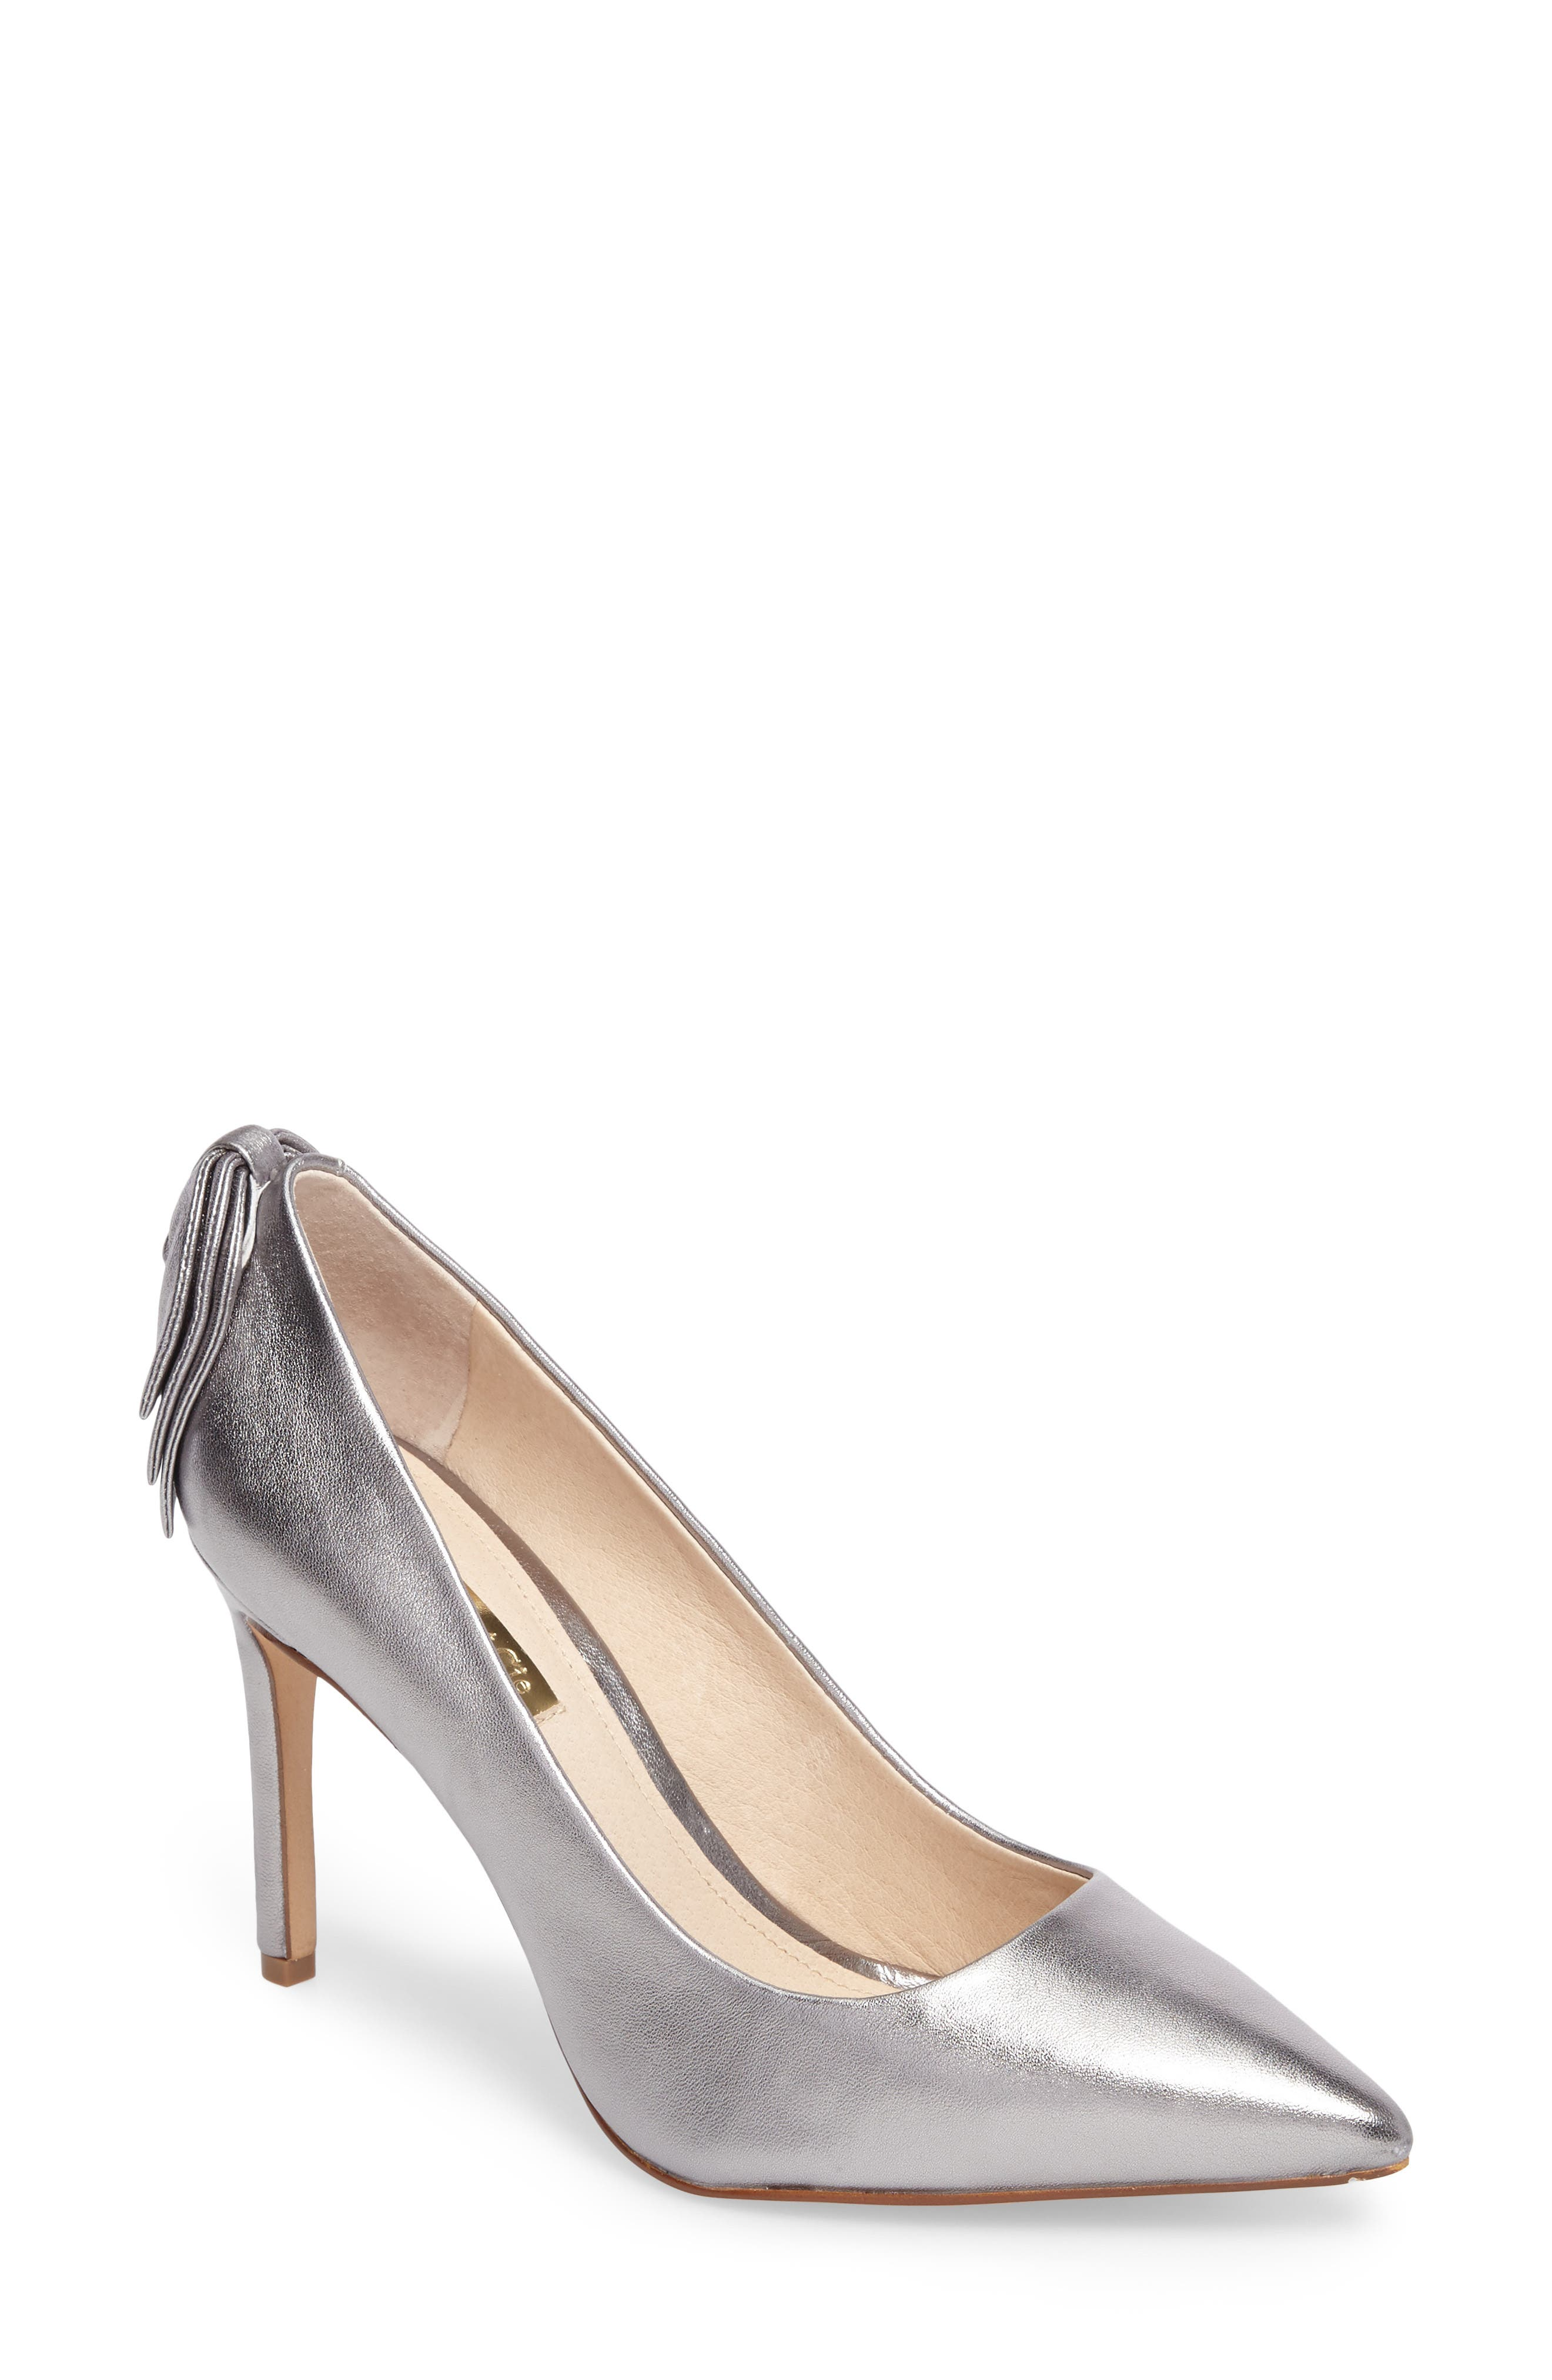 Josely Pointy Toe Pump,                             Main thumbnail 1, color,                             Chrome Leather